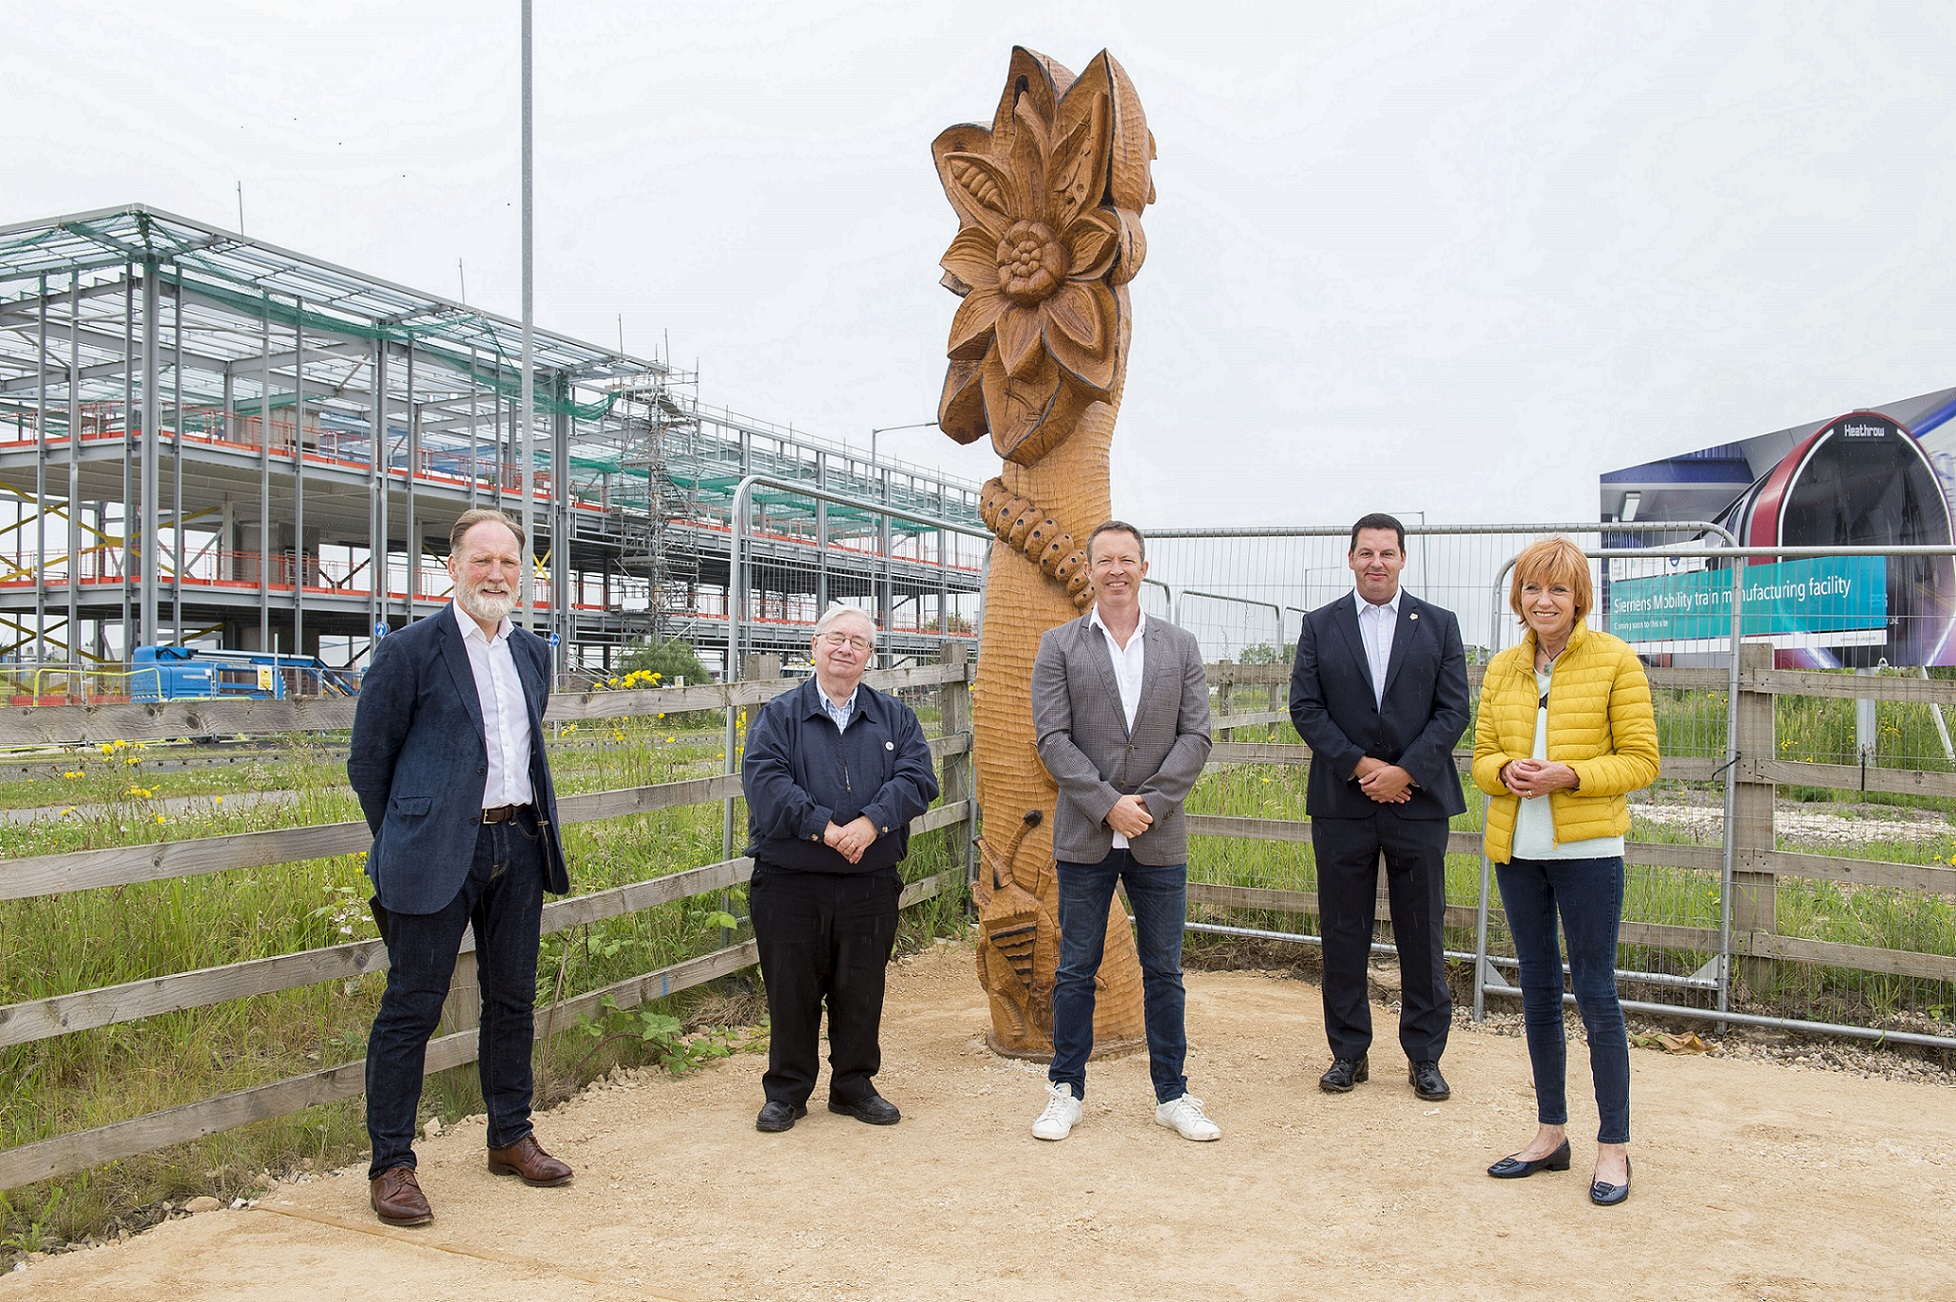 New Sculptures Installed at Oakhill Nature Reserve as Part of £300k Upgrade